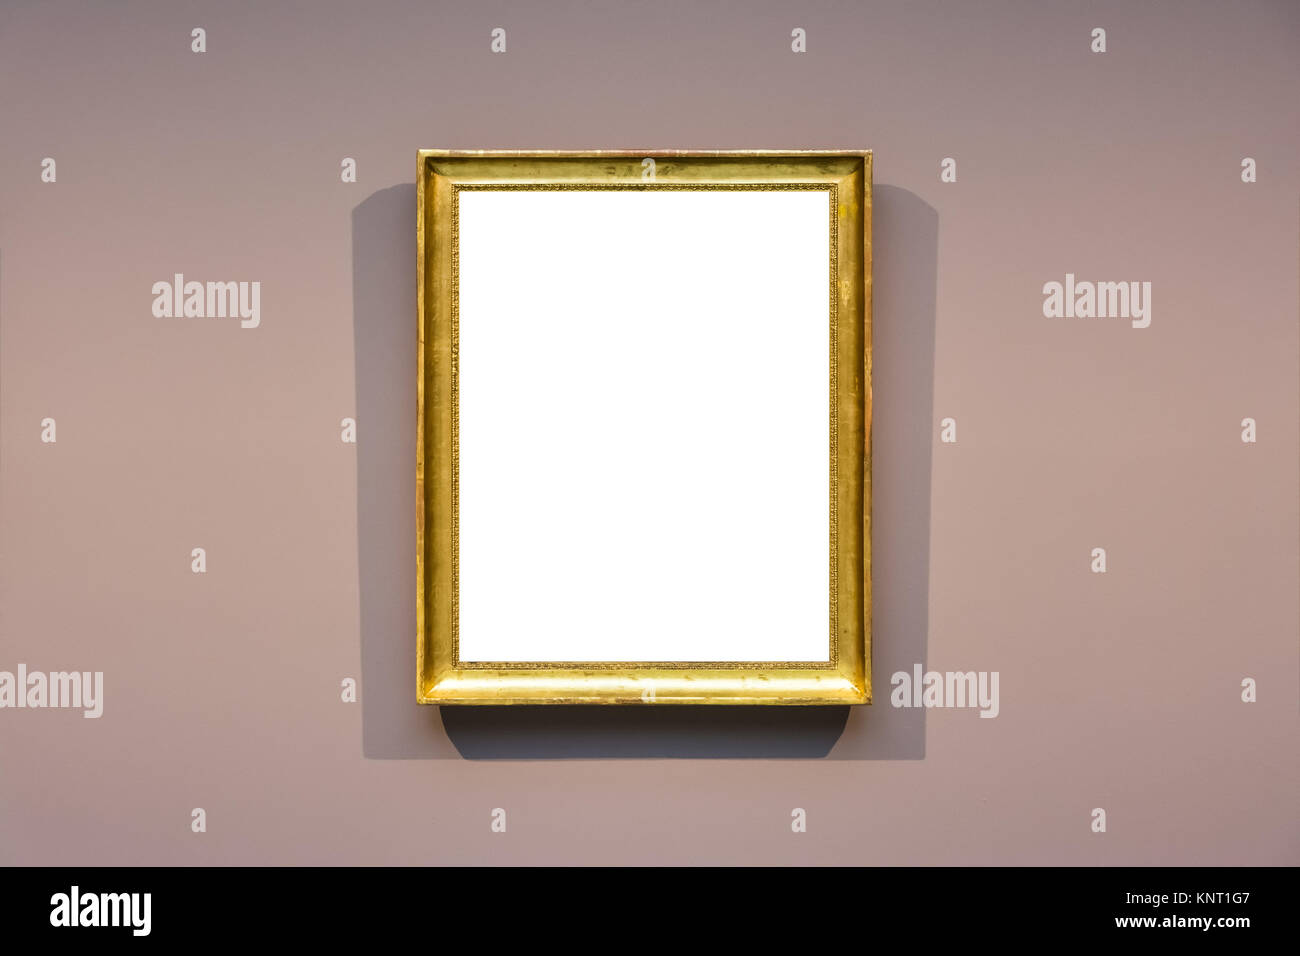 305e1845af4 Art Museum Frame Dark Grey Wall Ornate Minimal Design White Isolated Clipping  Path Template